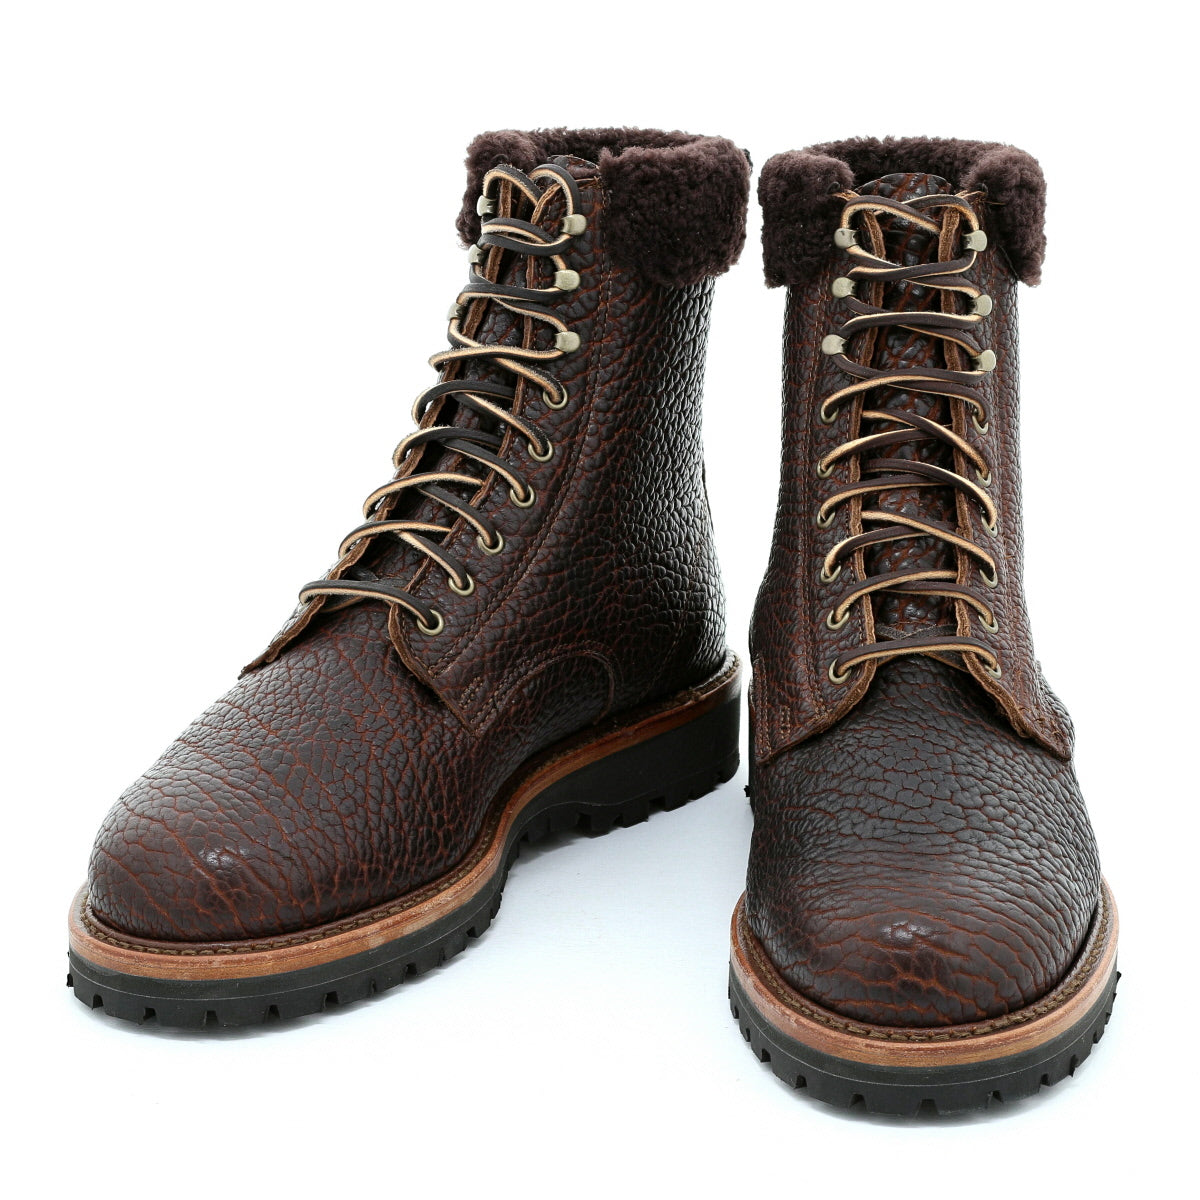 Freeman Boot - Chocolate Bison